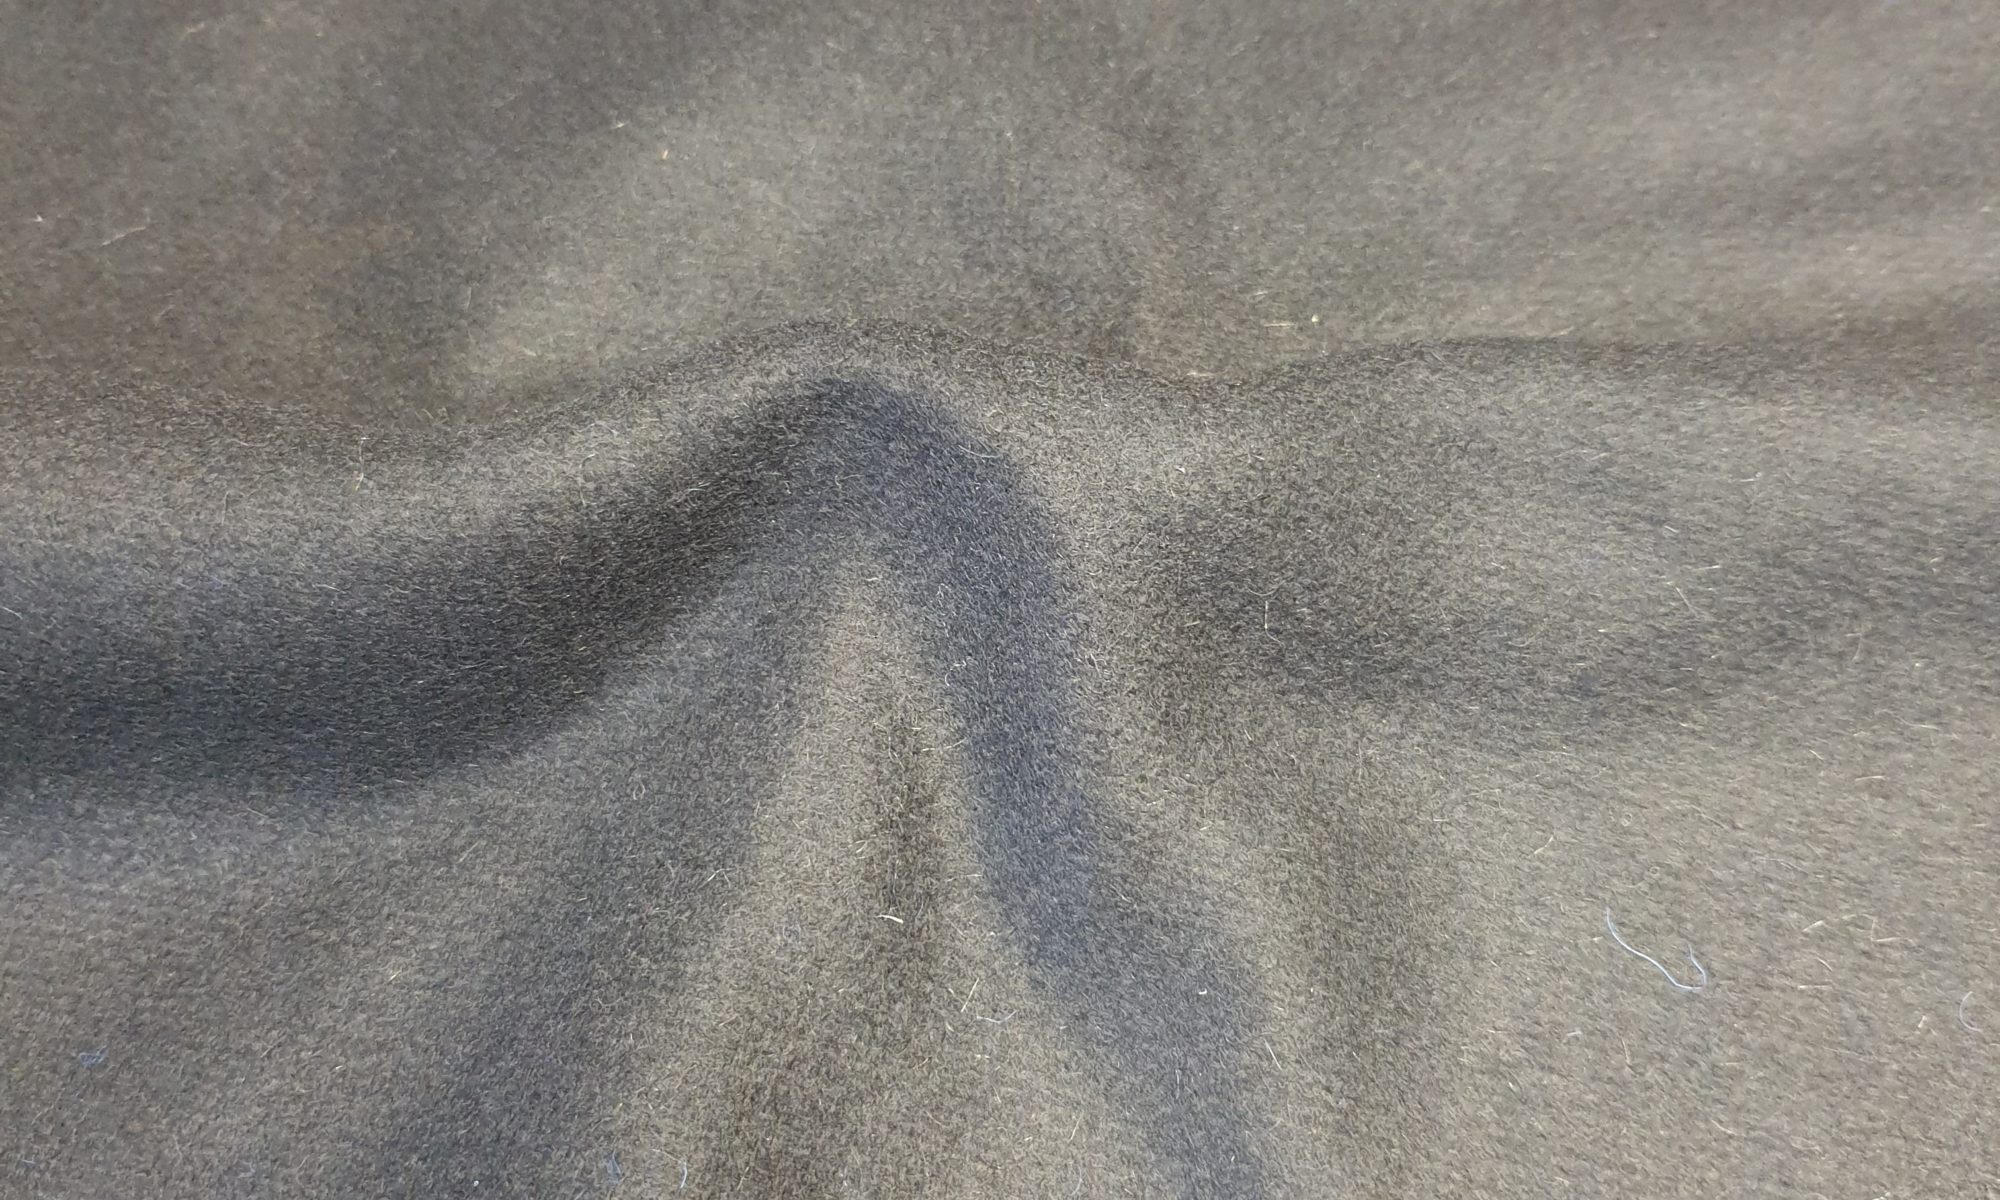 7532 wool melton coat fabric WIDTH cm150 WEIGHT gr500 - gr333 square meter - COMPOSITION 80 Wool 20 nylon polyammide - black 2500mts